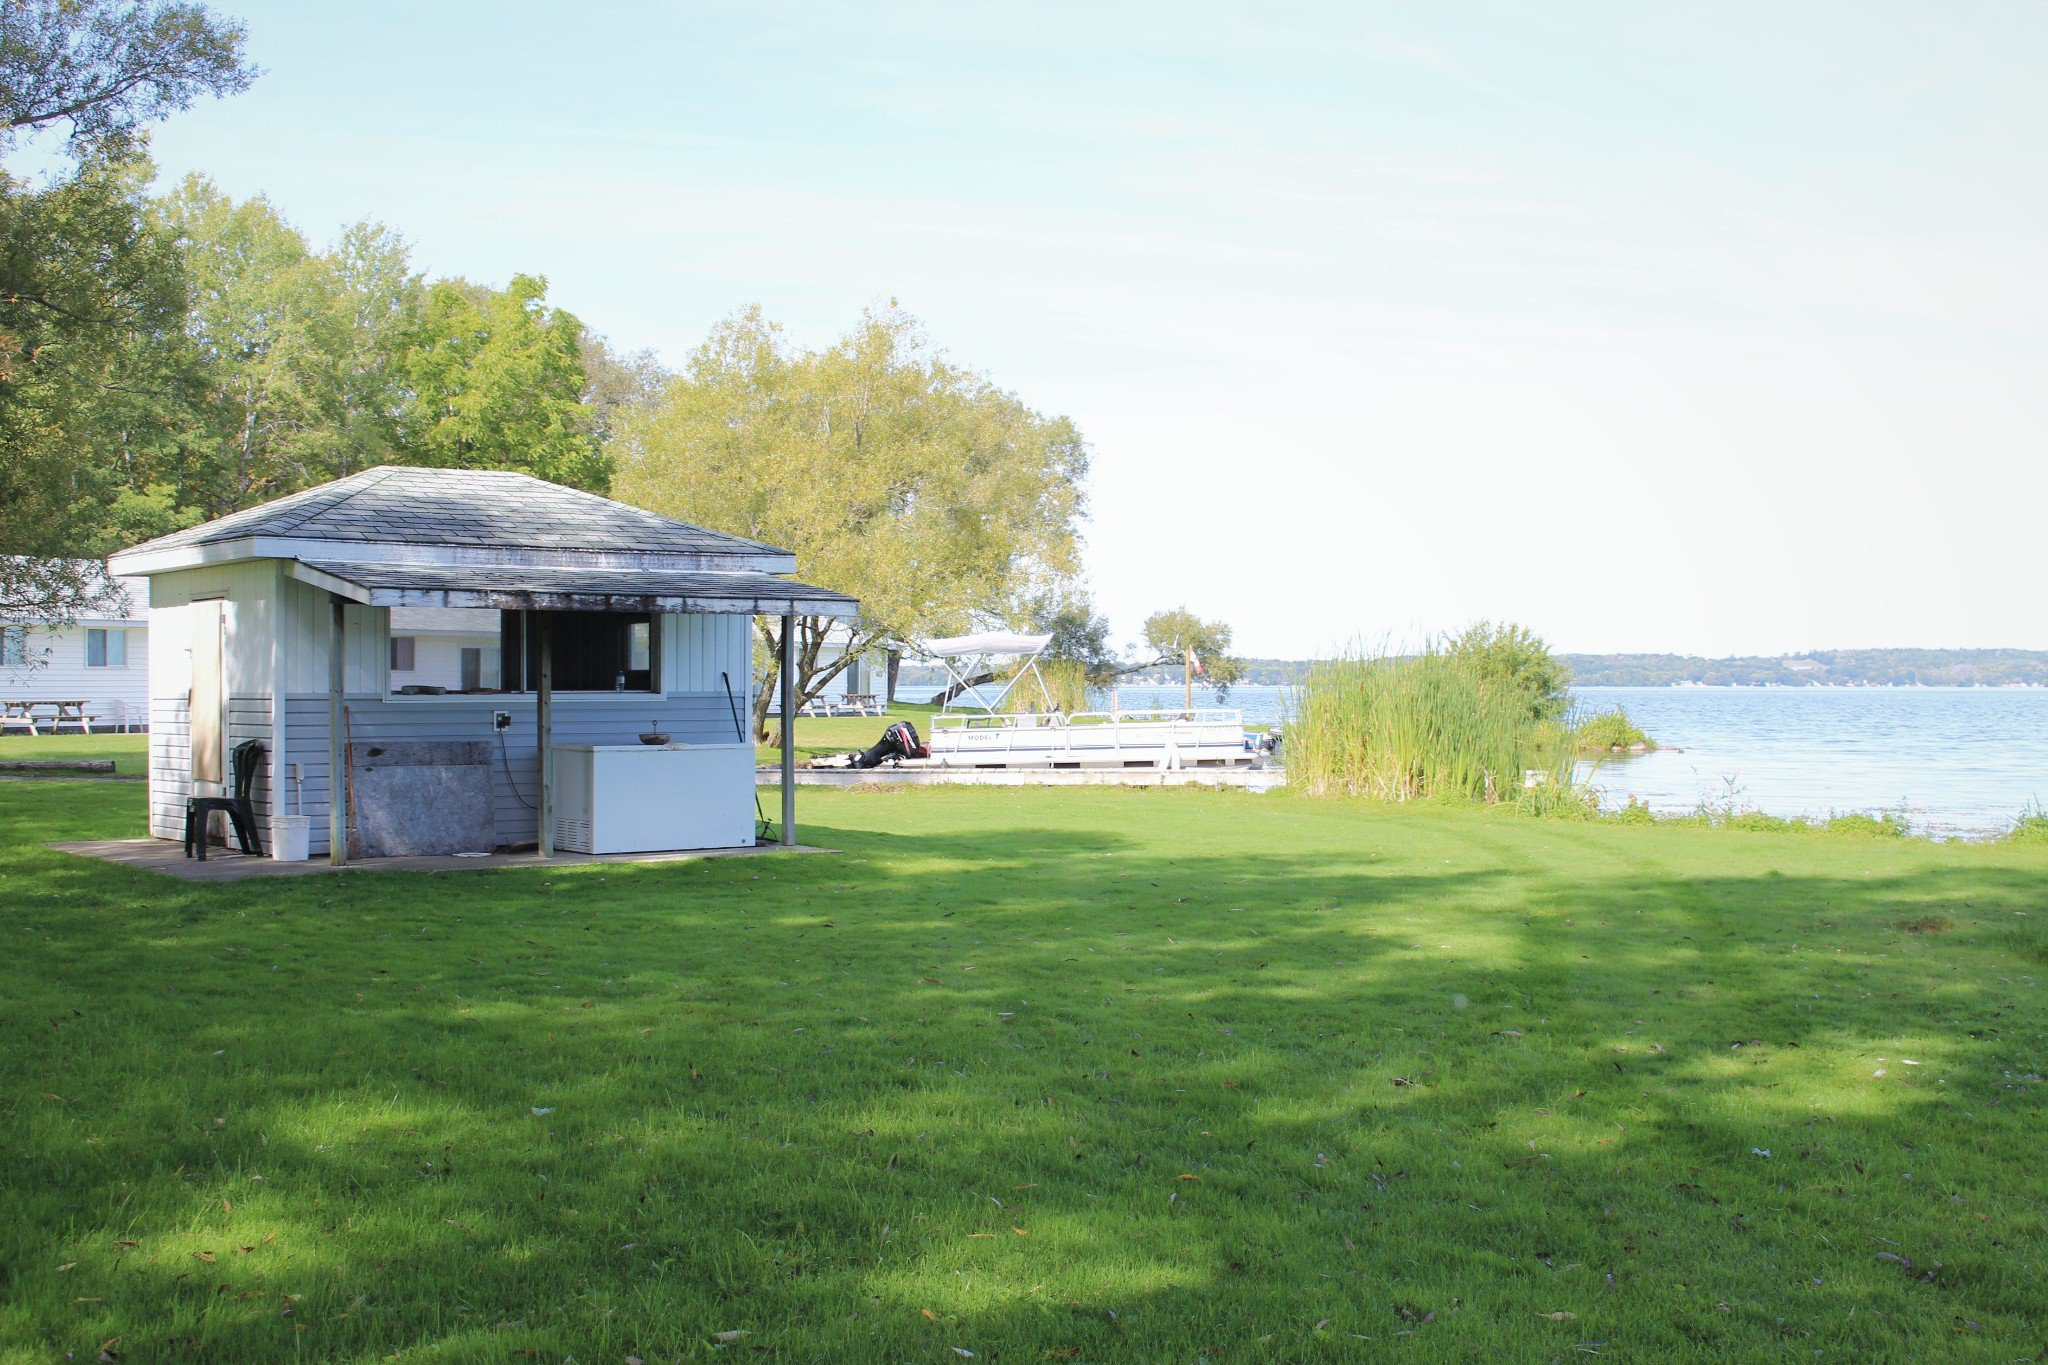 Photo 22: Photos: 6010 Rice Lake Scenic Drive in Harwood: Other for sale : MLS®# 223405